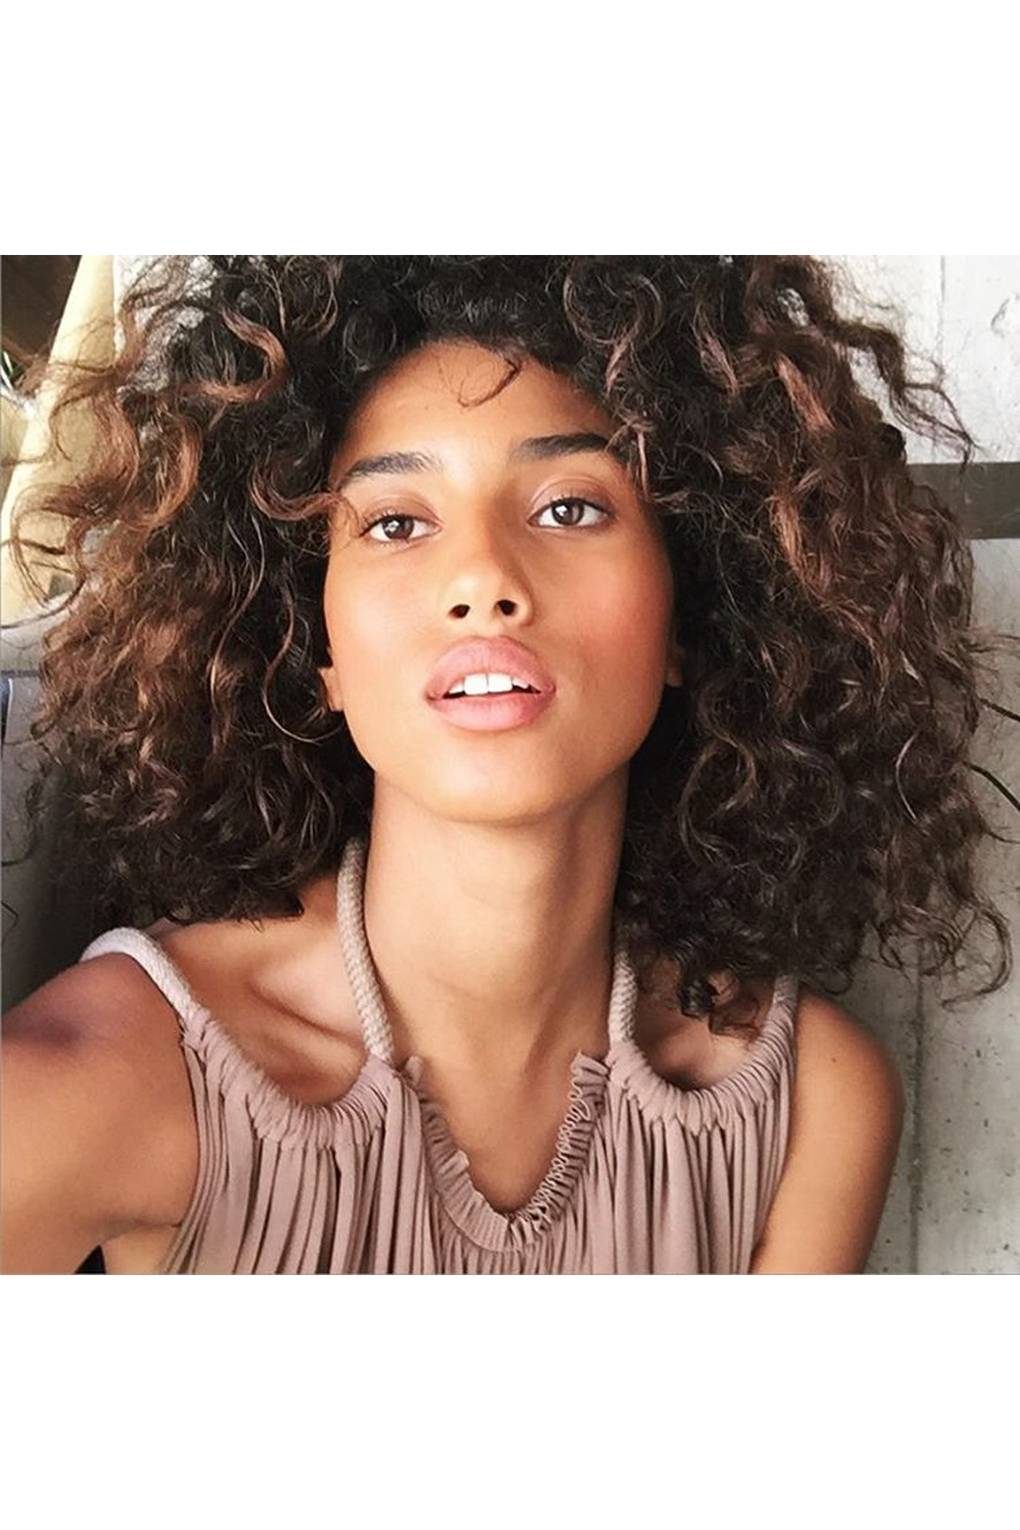 Selfie Imaan Hammam nudes (98 photos), Pussy, Is a cute, Twitter, see through 2018